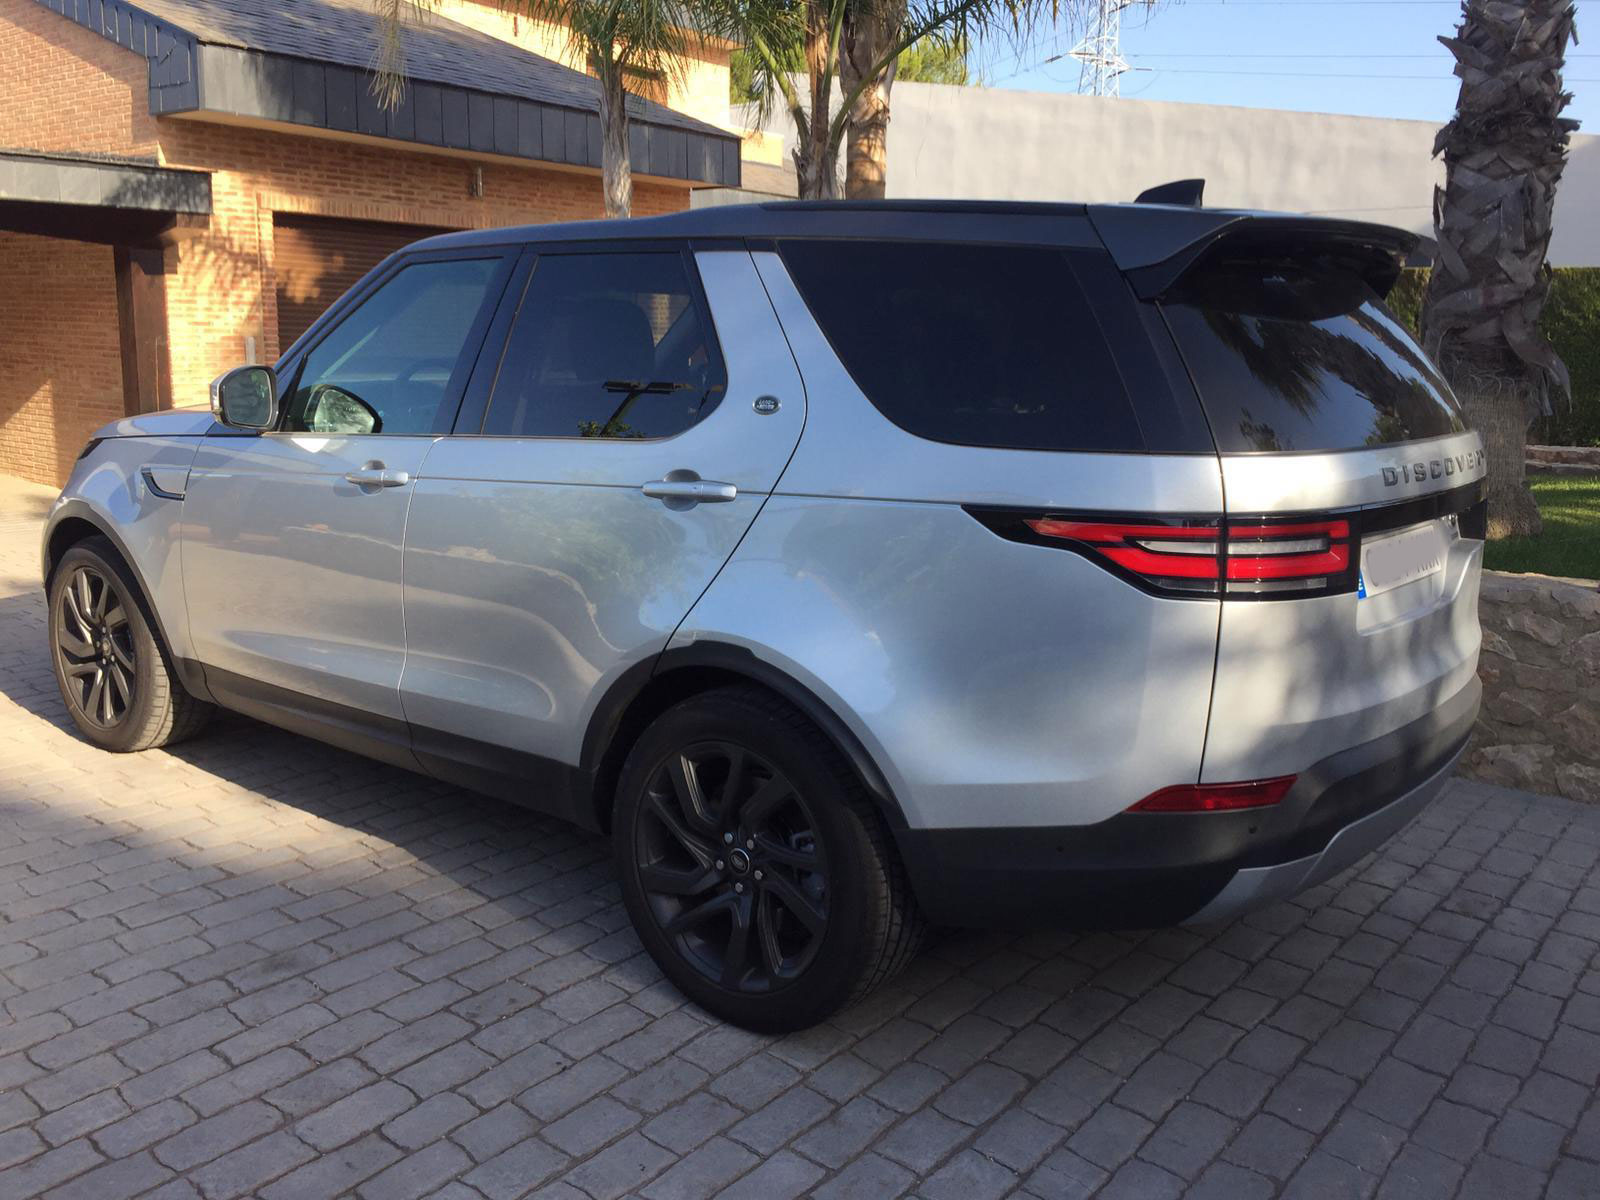 Range-Rover-Discovery-(2)